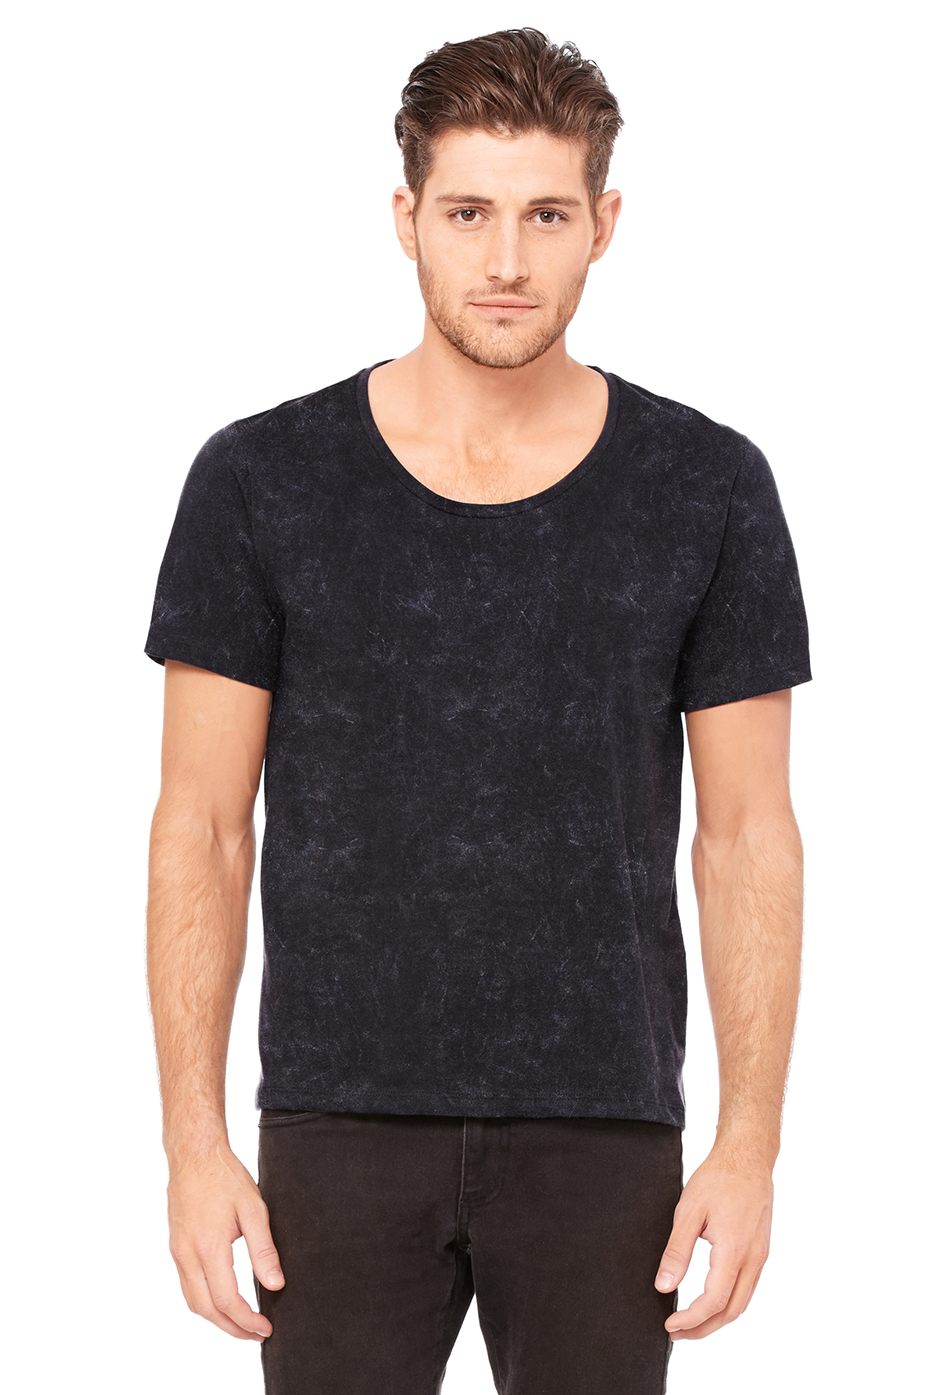 Wide Neck T Shirt Men